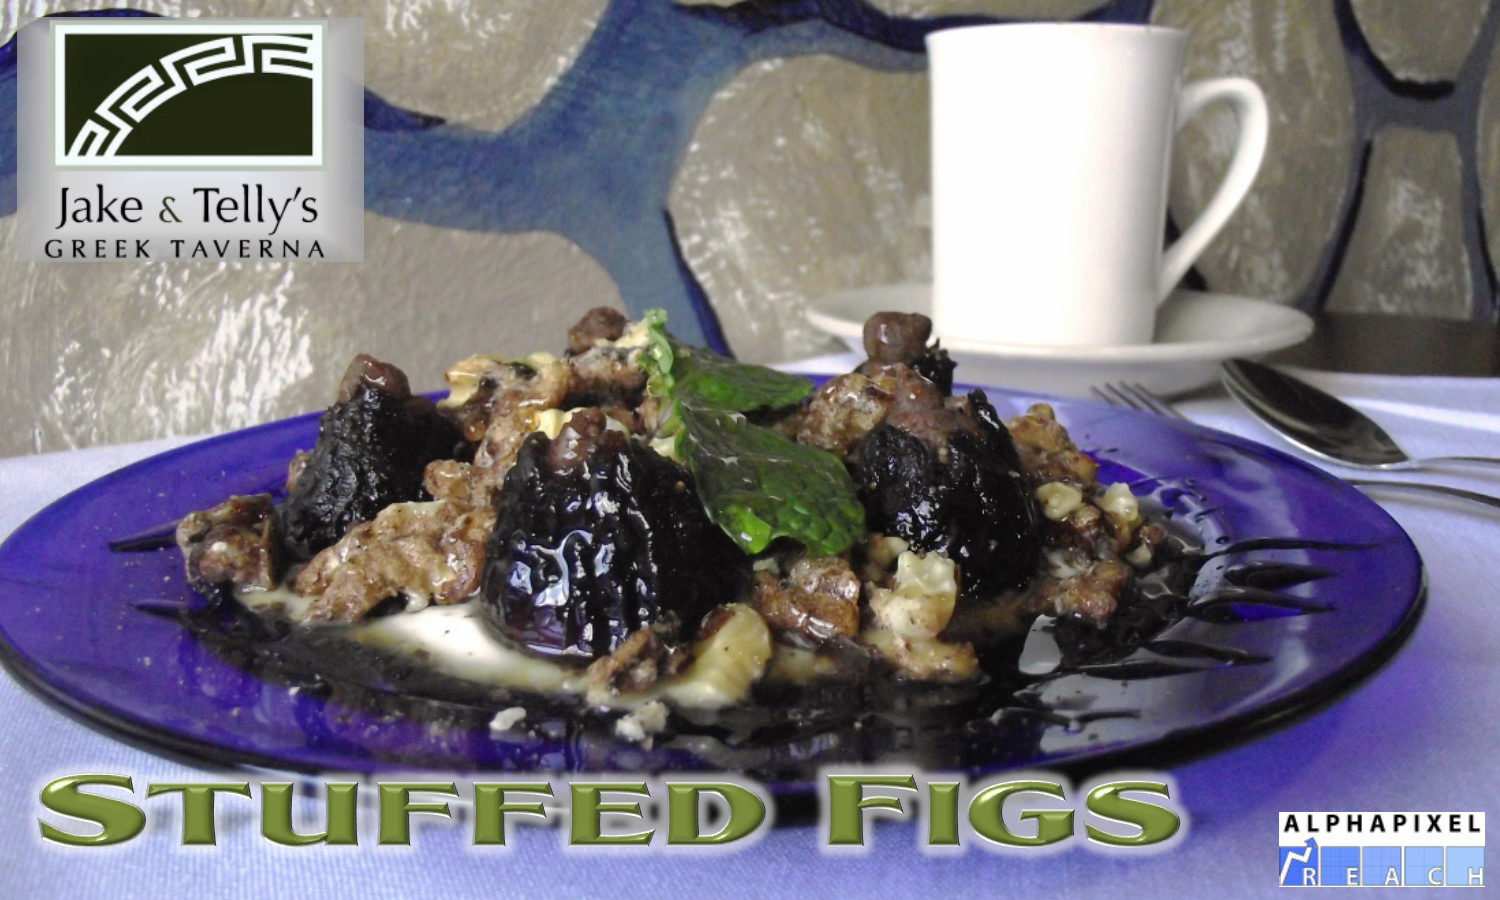 """Dessert at Jake and Telly's, Stuffed Figs: A photograph of a blue plate of Stuffed Figs on a white tablecloth with a cup of coffee and a fork and spoon visible behind them. The figs are stuffed with cinnamon, vanilla, and crushed walnuts then topped with Greek yogurt and honey. A Green Jake and Telly's logo is in the upper left hand corner and the text """"Stuffed Figs"""" is present beneath the plate. The AlphaPixel Reach logo is in the lower right hand corner."""